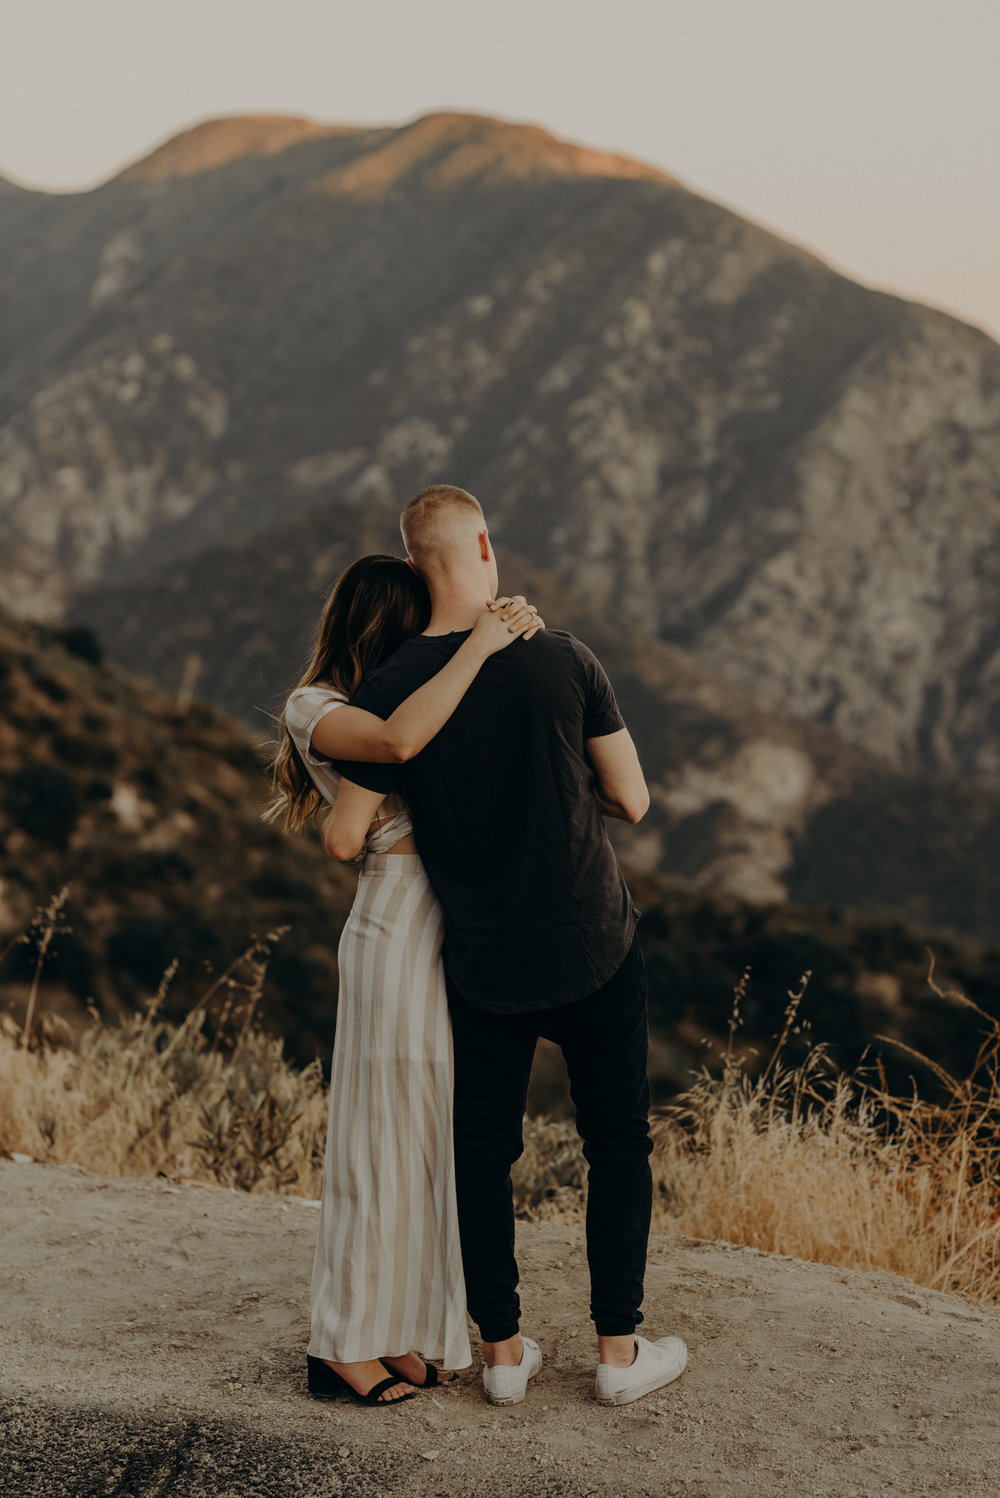 Isaiah + Taylor Photography - Los Angeles Forest Engagement Session - Laid back wedding photographer-012.jpg